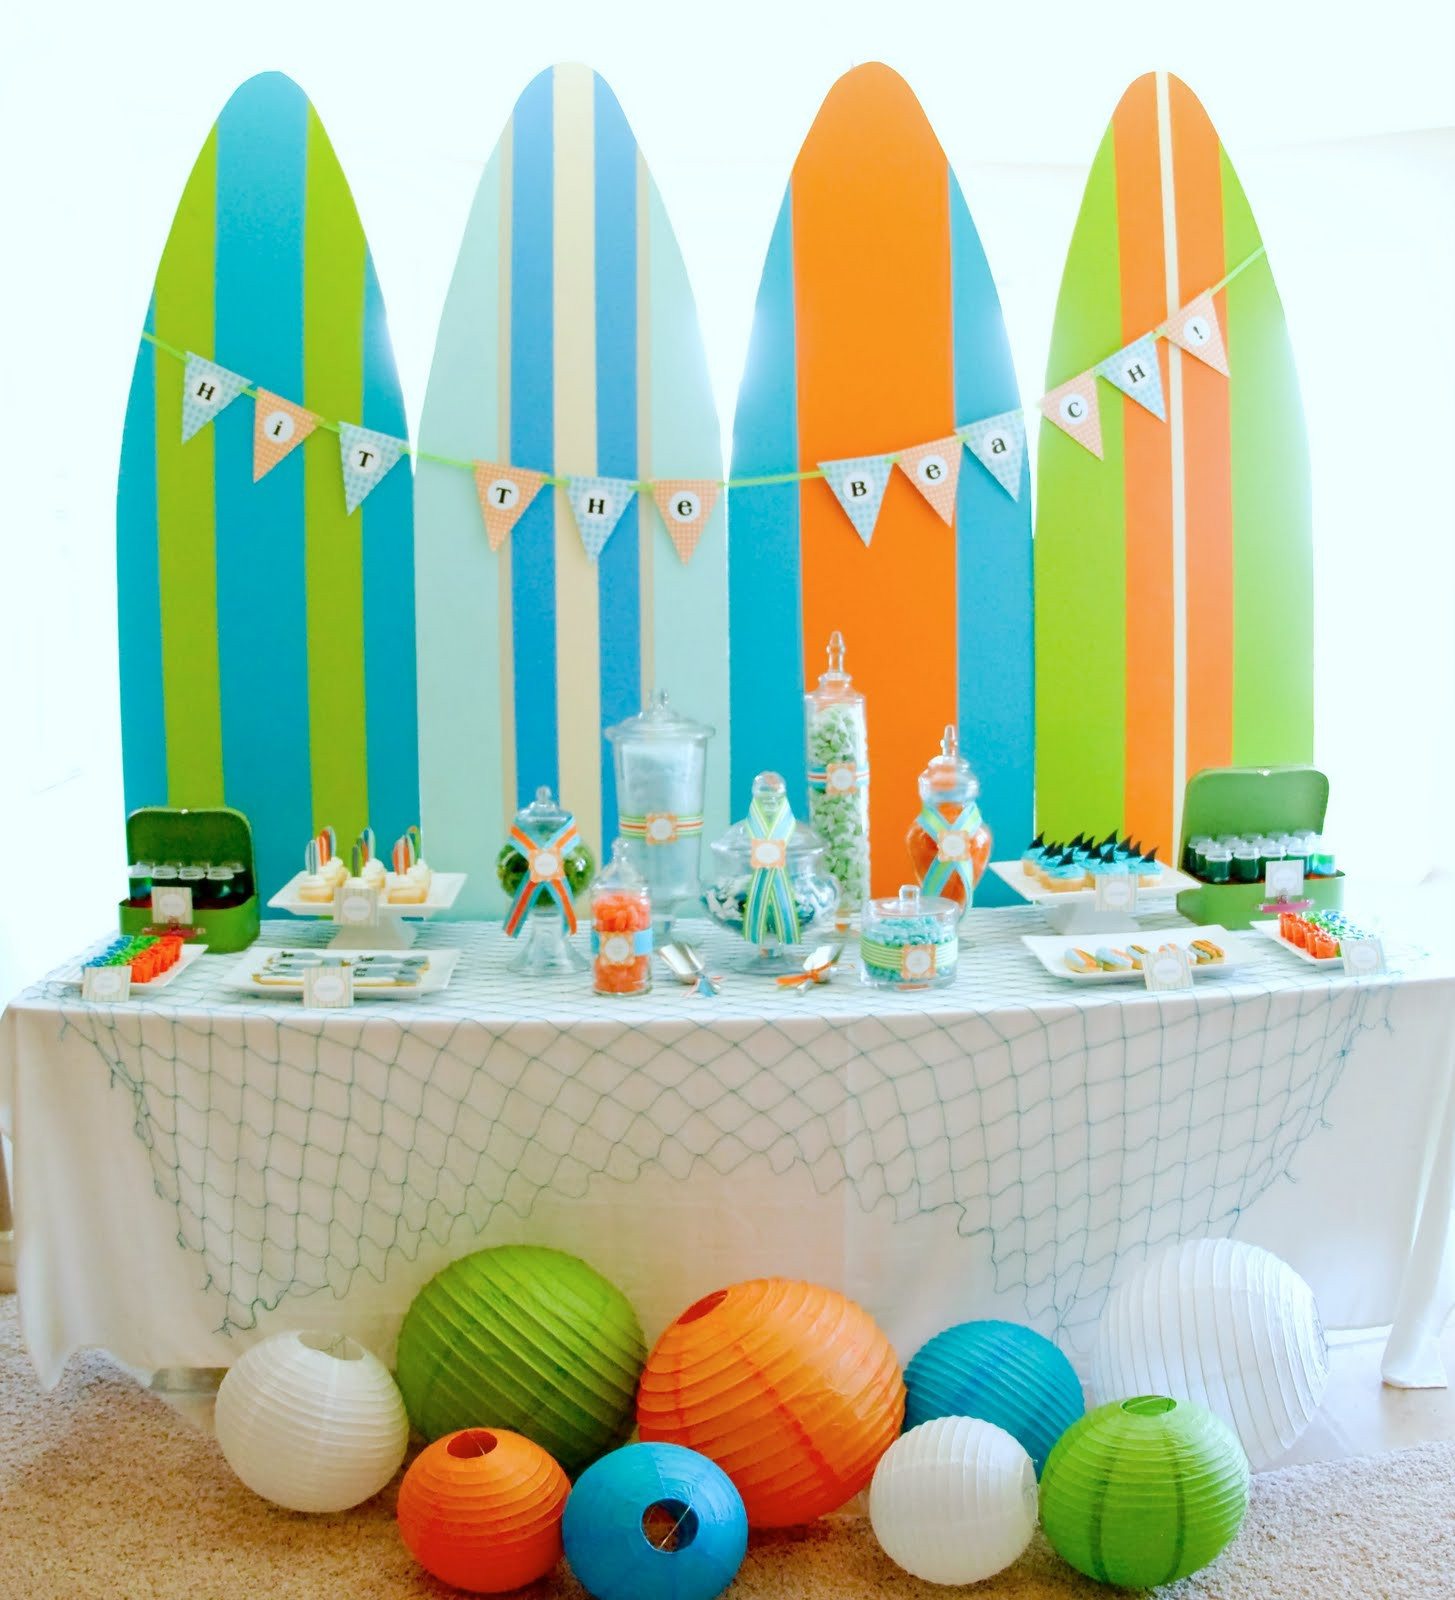 Summer Theme Party Ideas  Kara s Party Ideas Surf s Up Summer Pool Party